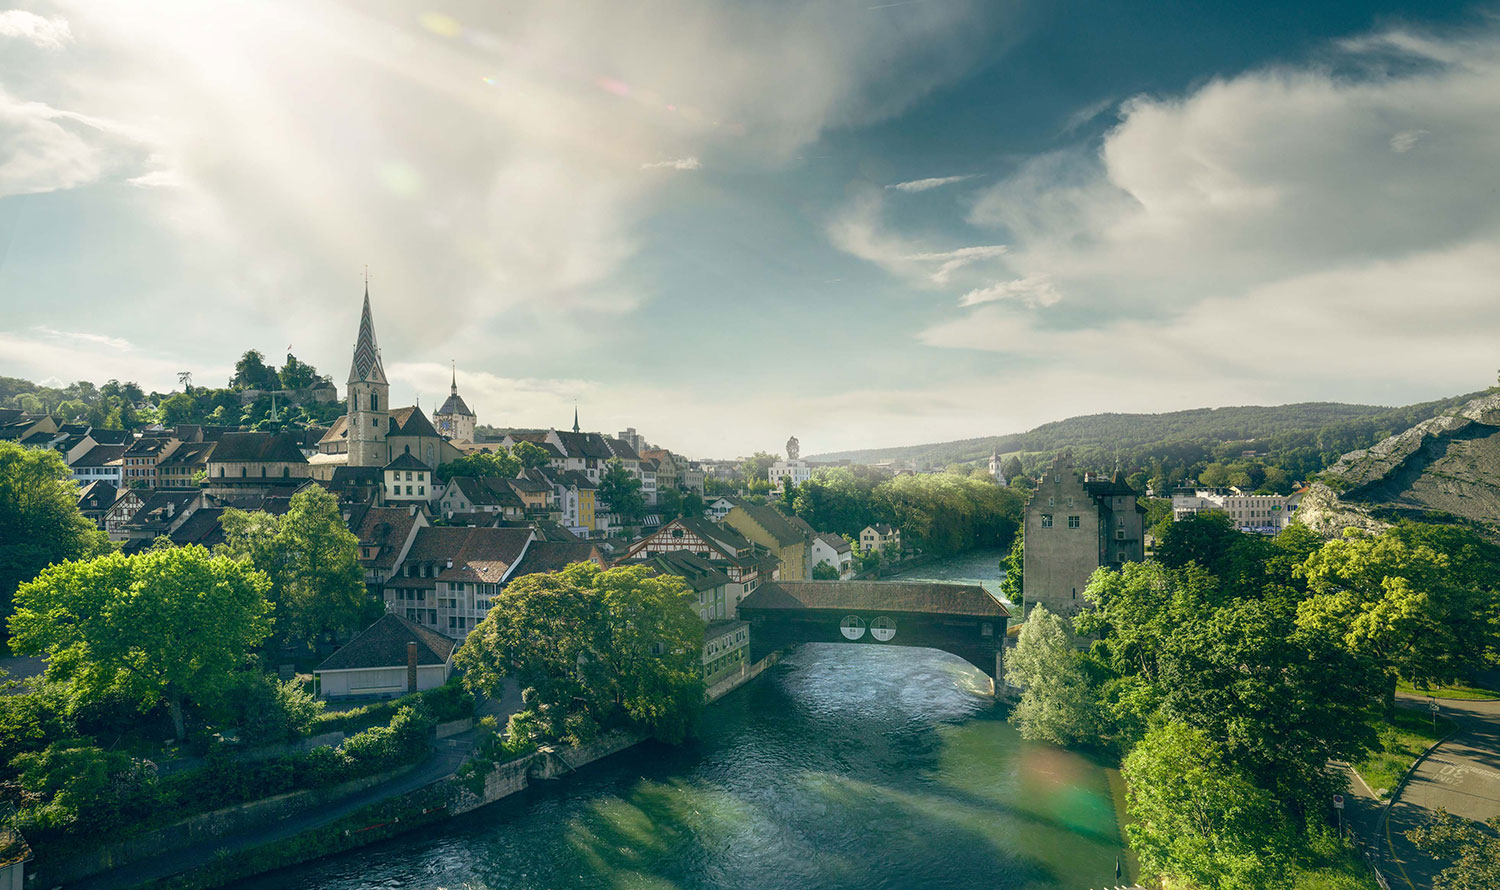 Hotels in Aargau Region - Surprisingly versatile «What's Aargau got to do with tourism?» some people might think. Many Swiss